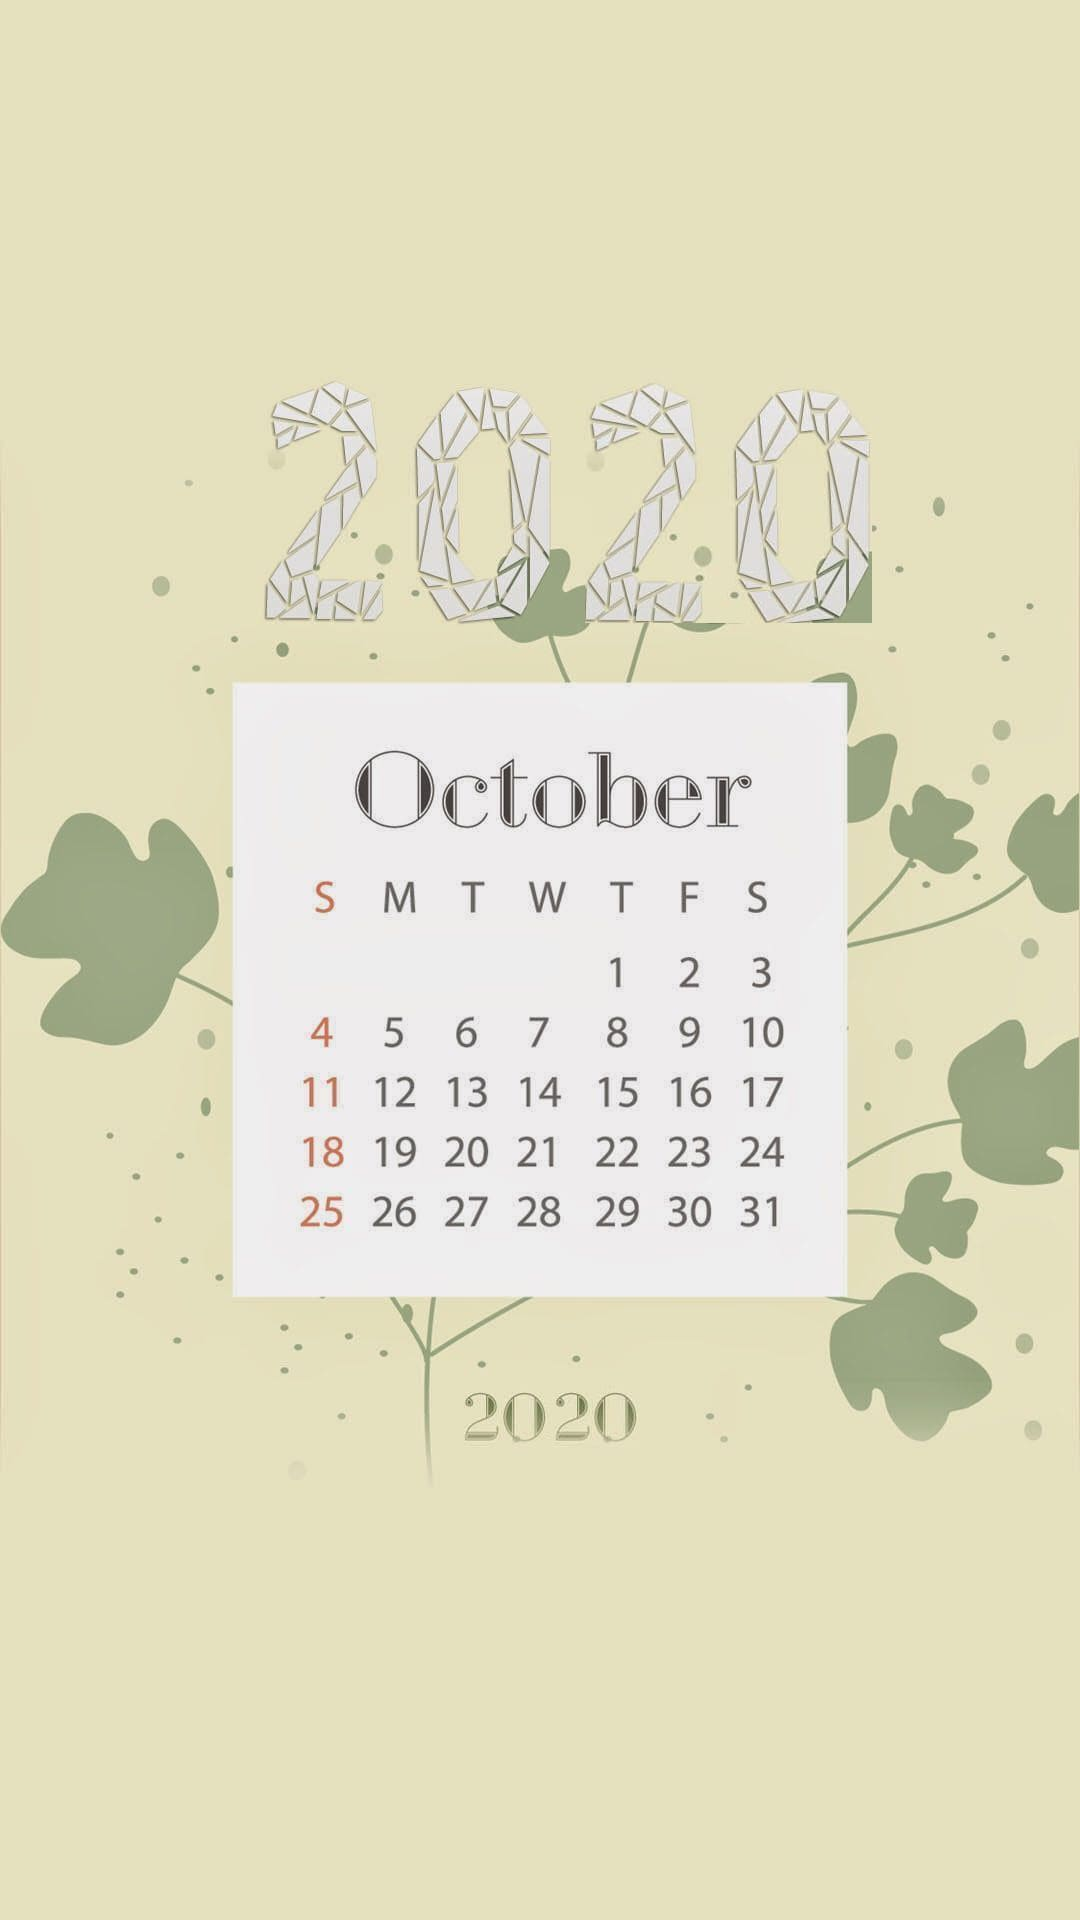 2020 October Calendar Wallpaper Kolpaper Awesome Free Hd Wallpapers